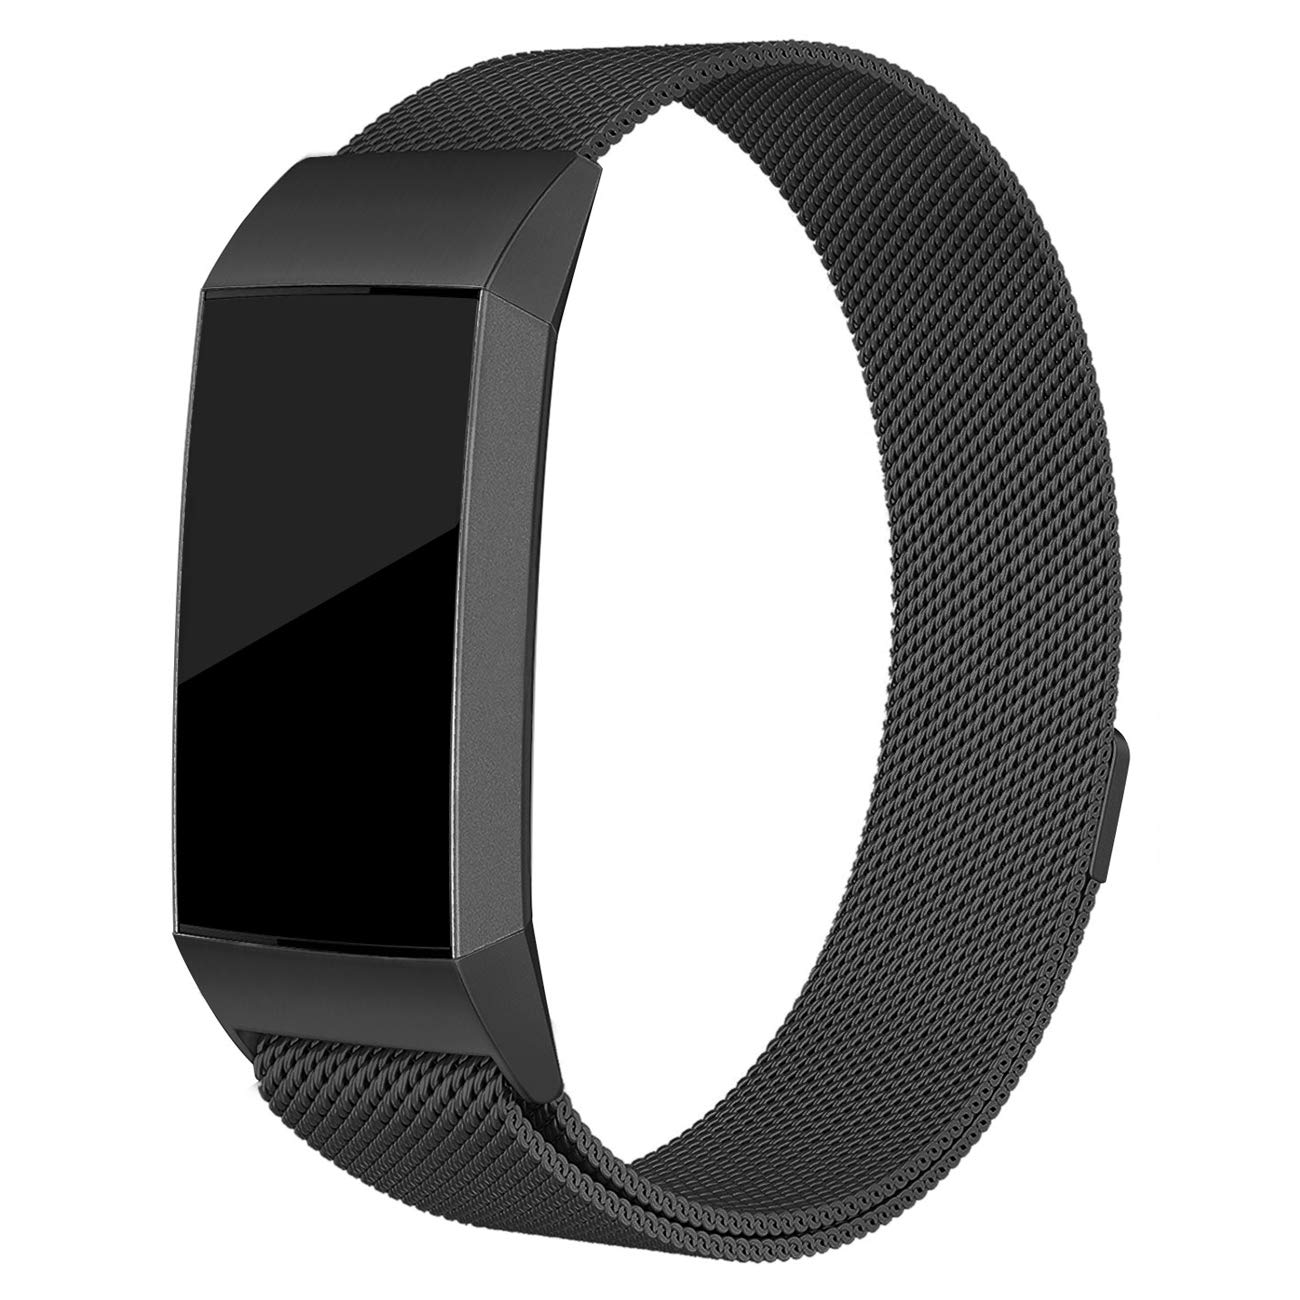 hooroor Compatible Bands Replacement for Fitbit Charge 3 Fitness Tracker Small Large for Women Men, Unique Magnetic Closure Clasp Milanese Loop Stainless Steel Metal Sport Bracelet (Black, Small)